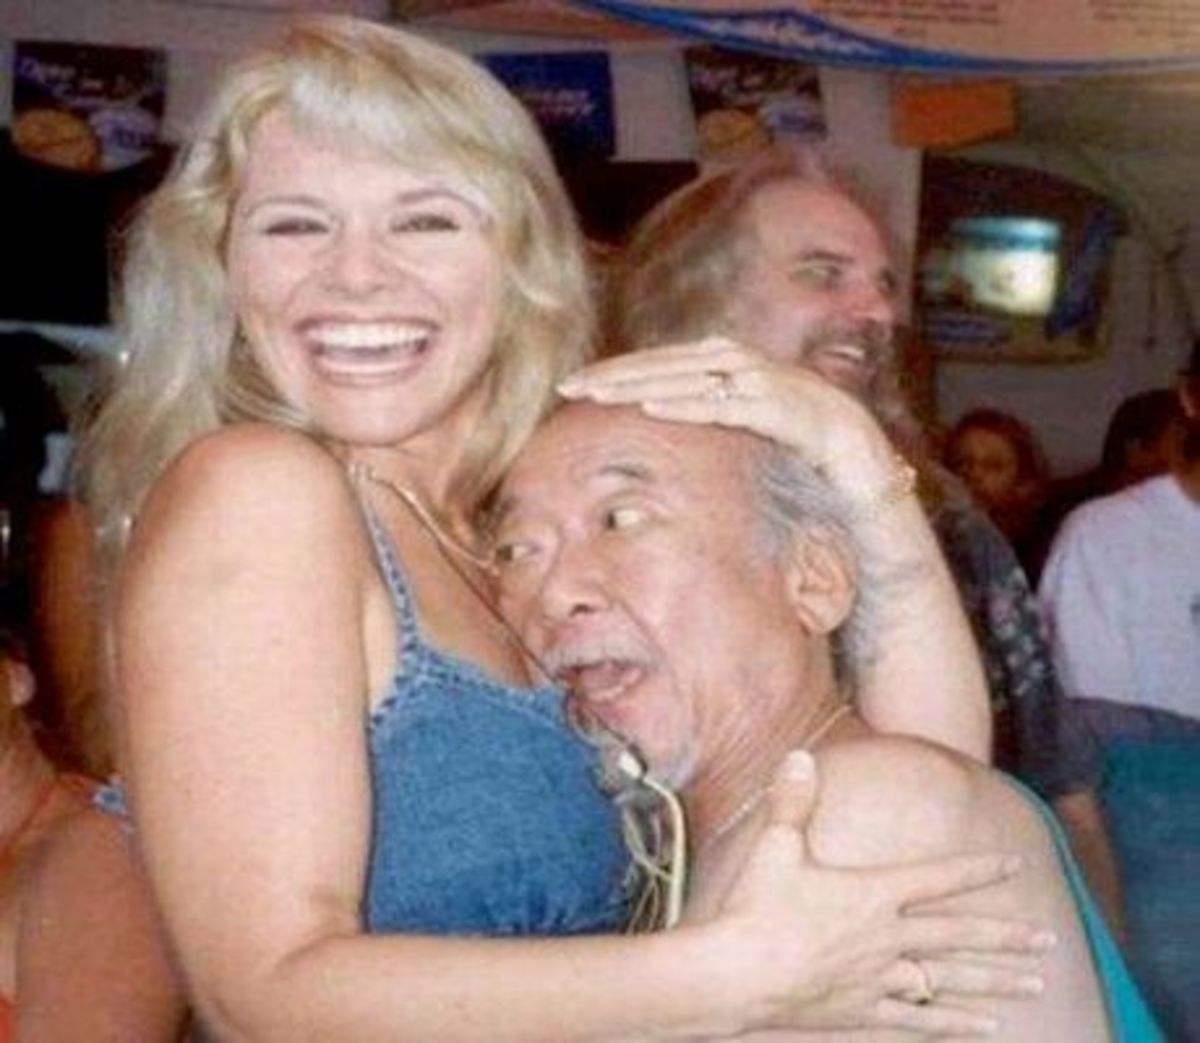 This old man with sexy blonde has thrown away his credit cards. Look how happy he is after getting out of debts.